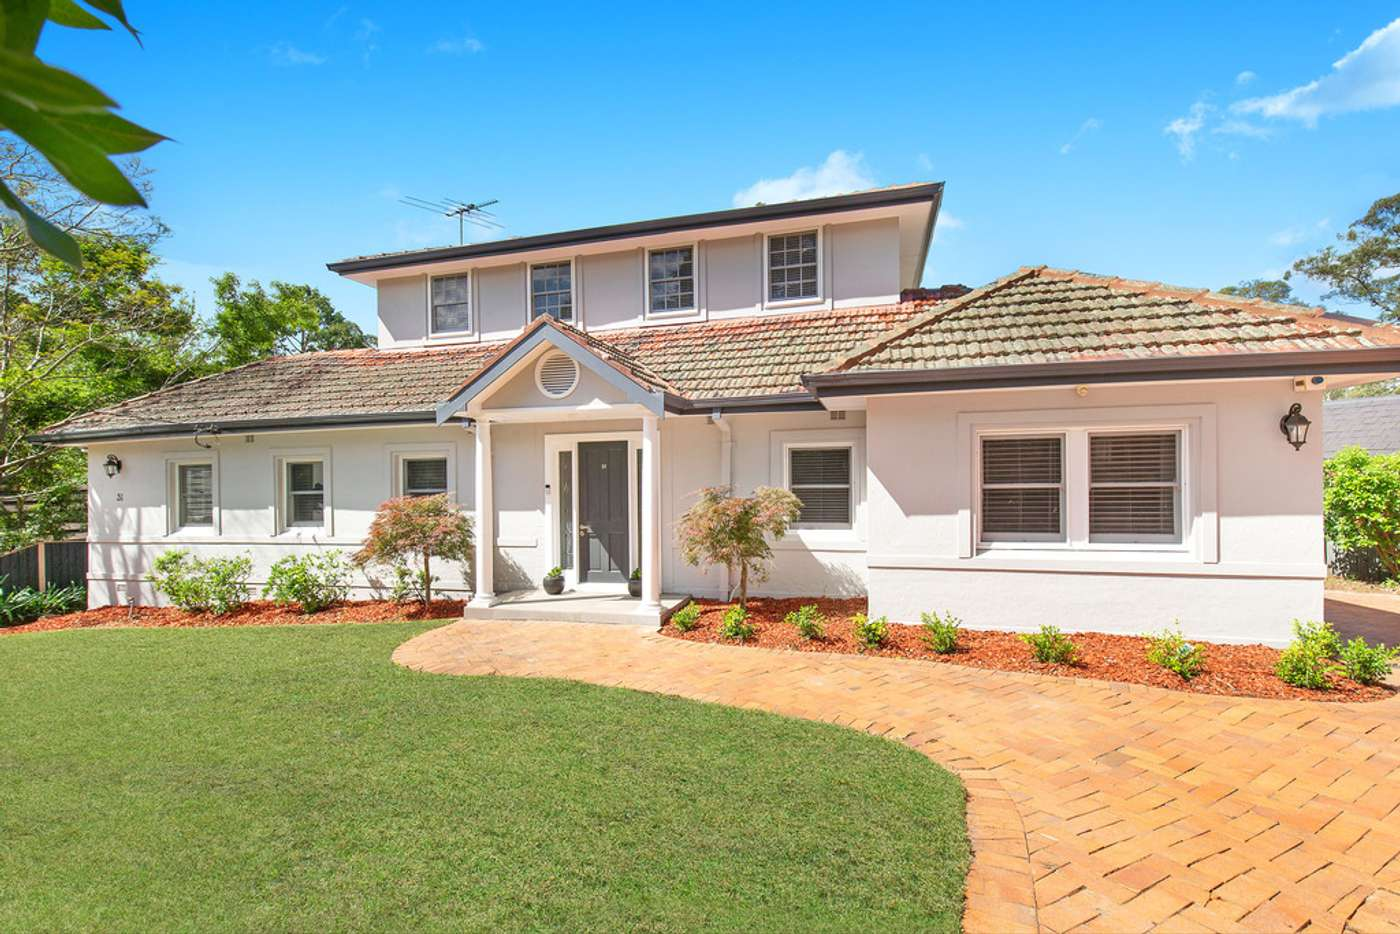 Fifth view of Homely house listing, 31 Selwyn St, Pymble NSW 2073